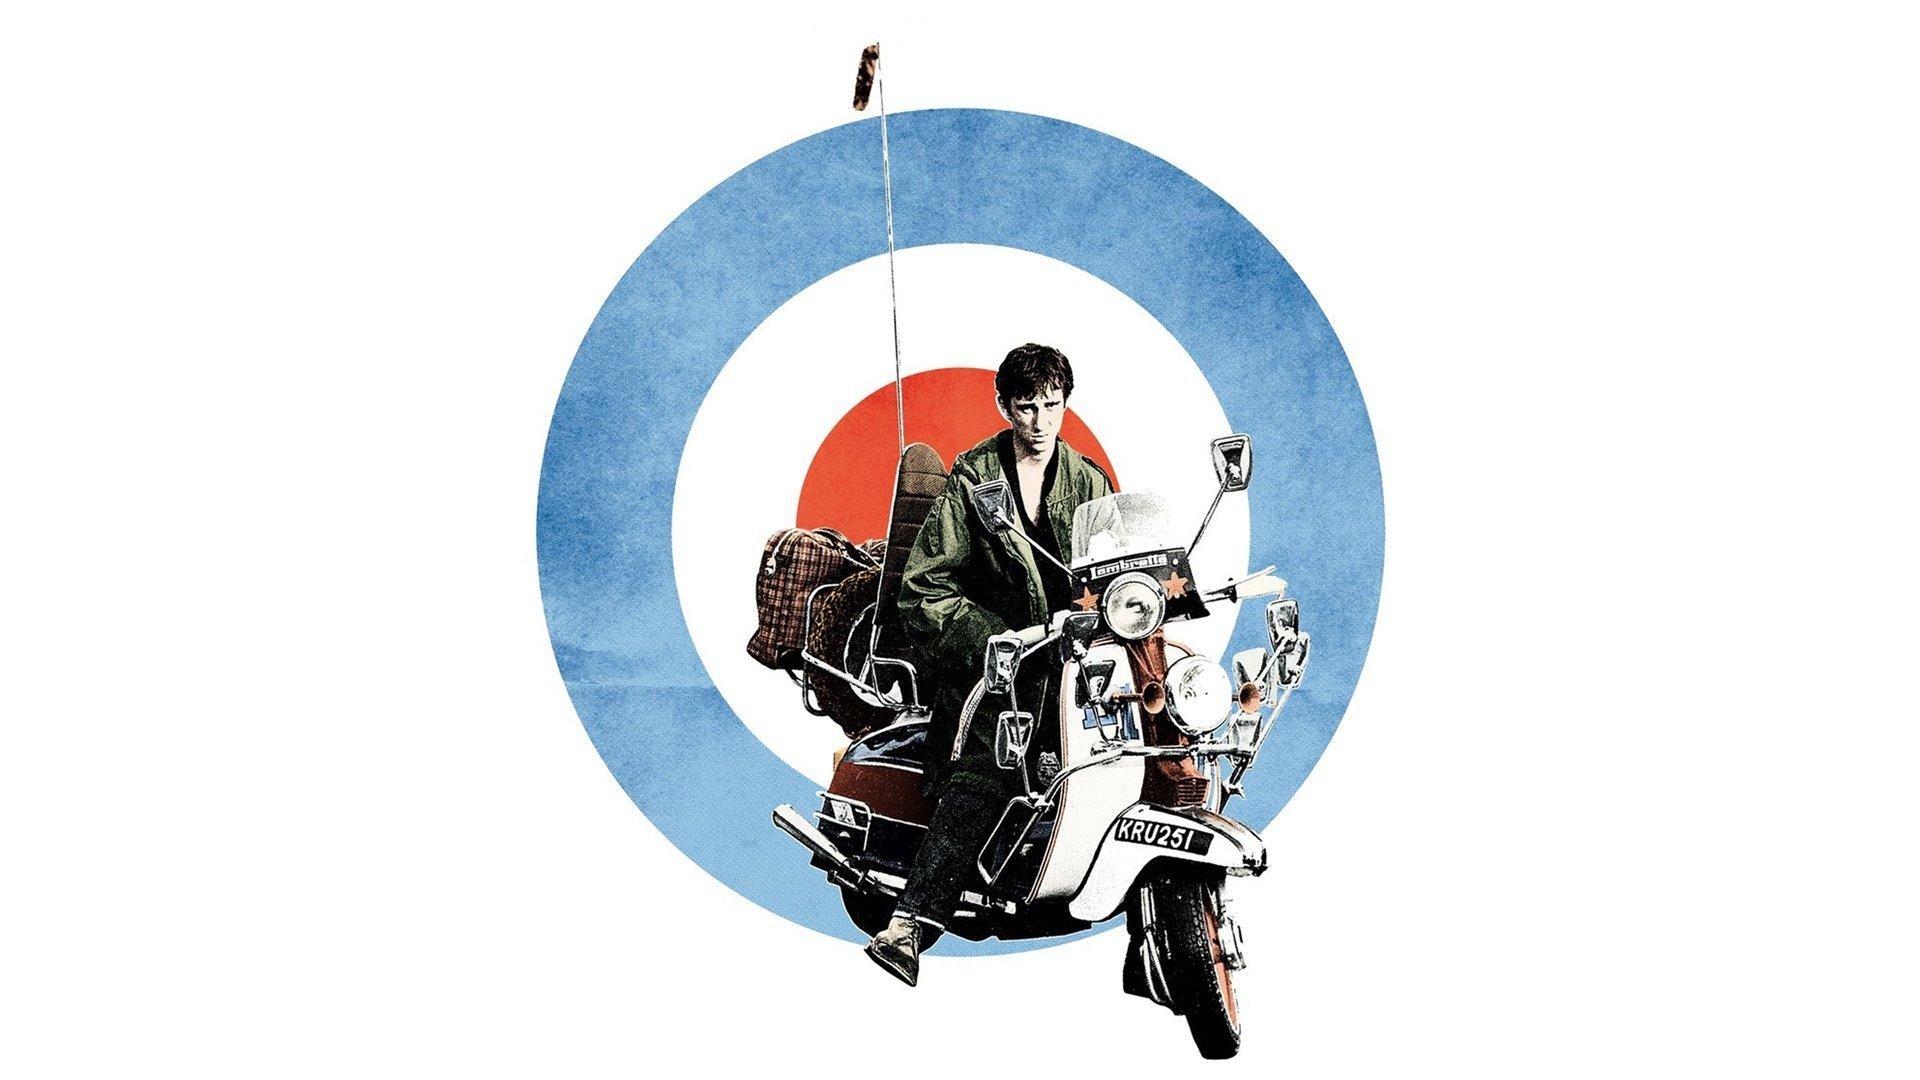 Quadrophenia Full Hd Wallpaper And Background | 1920X1080 | Id:810046 Intended For Quadrophenia Wall Art (View 19 of 23)